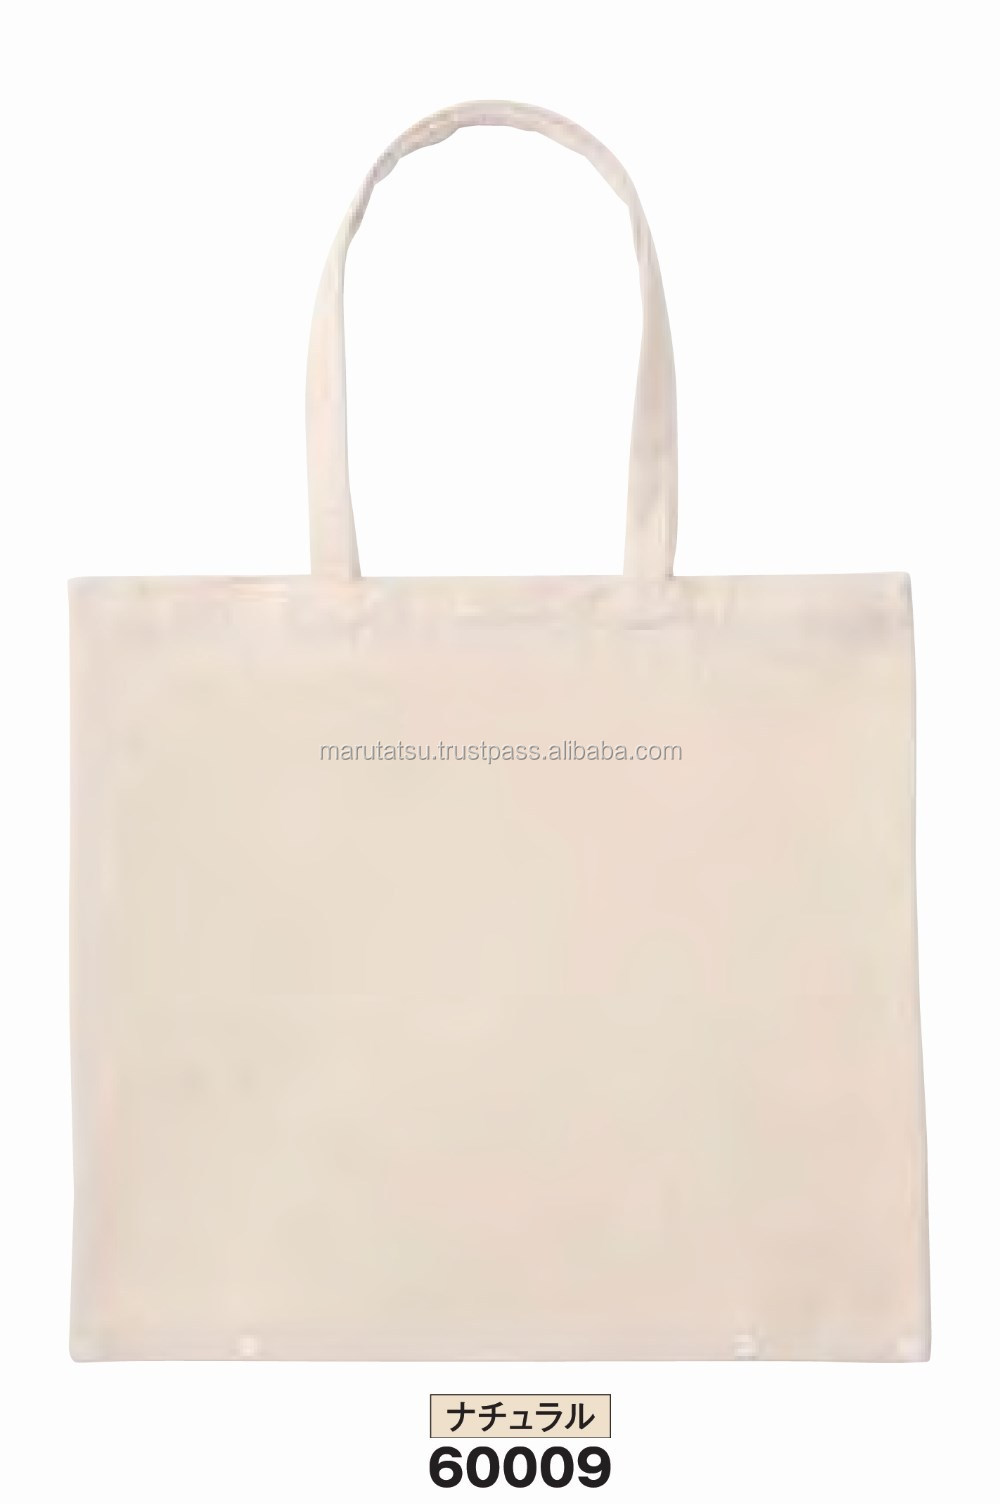 Reliable and High quality canvas drawstring bag Canvas How to use 2 WAY Bag Natural at reasonable prices